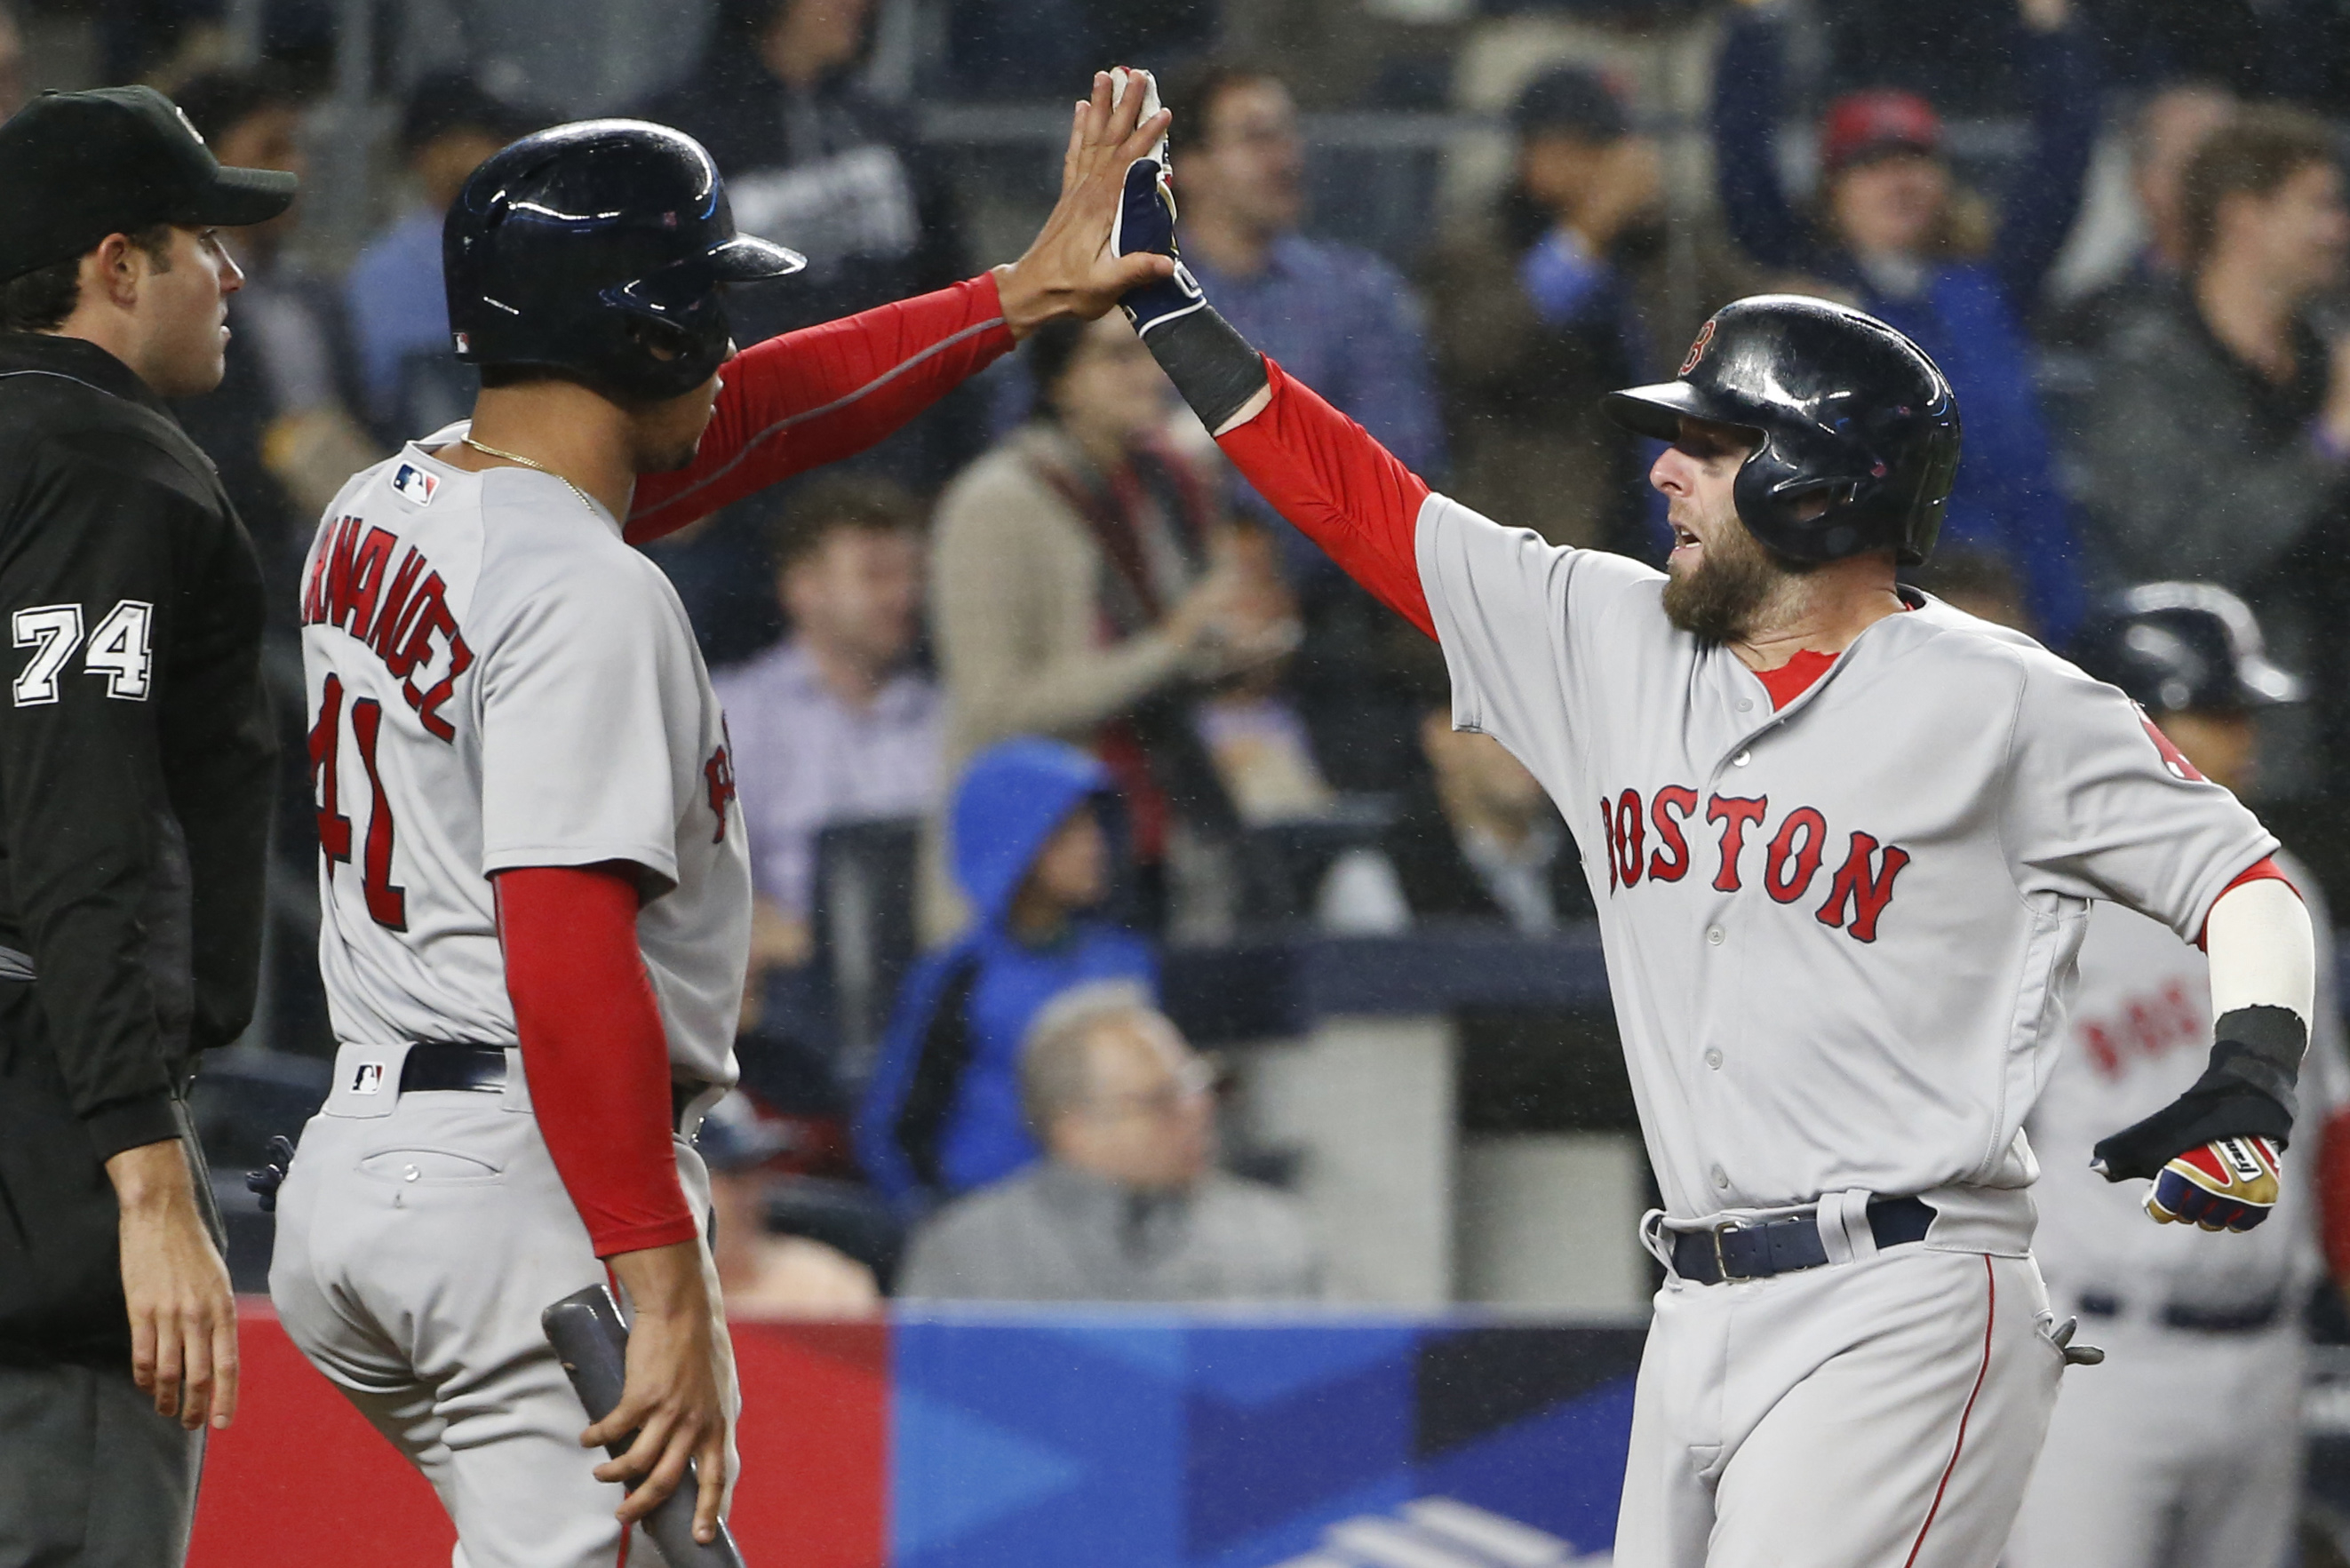 Boston Red Sox Marco Hernandez (41) greets Boston Red Sox Dustin Pedroia (15) after Pedroia scored on an eighth-inning, two-run double by Mookie Betts in a baseball game against the New York Yankees in New York, Wednesday, Sept. 28, 2016. (AP Photo/Kathy